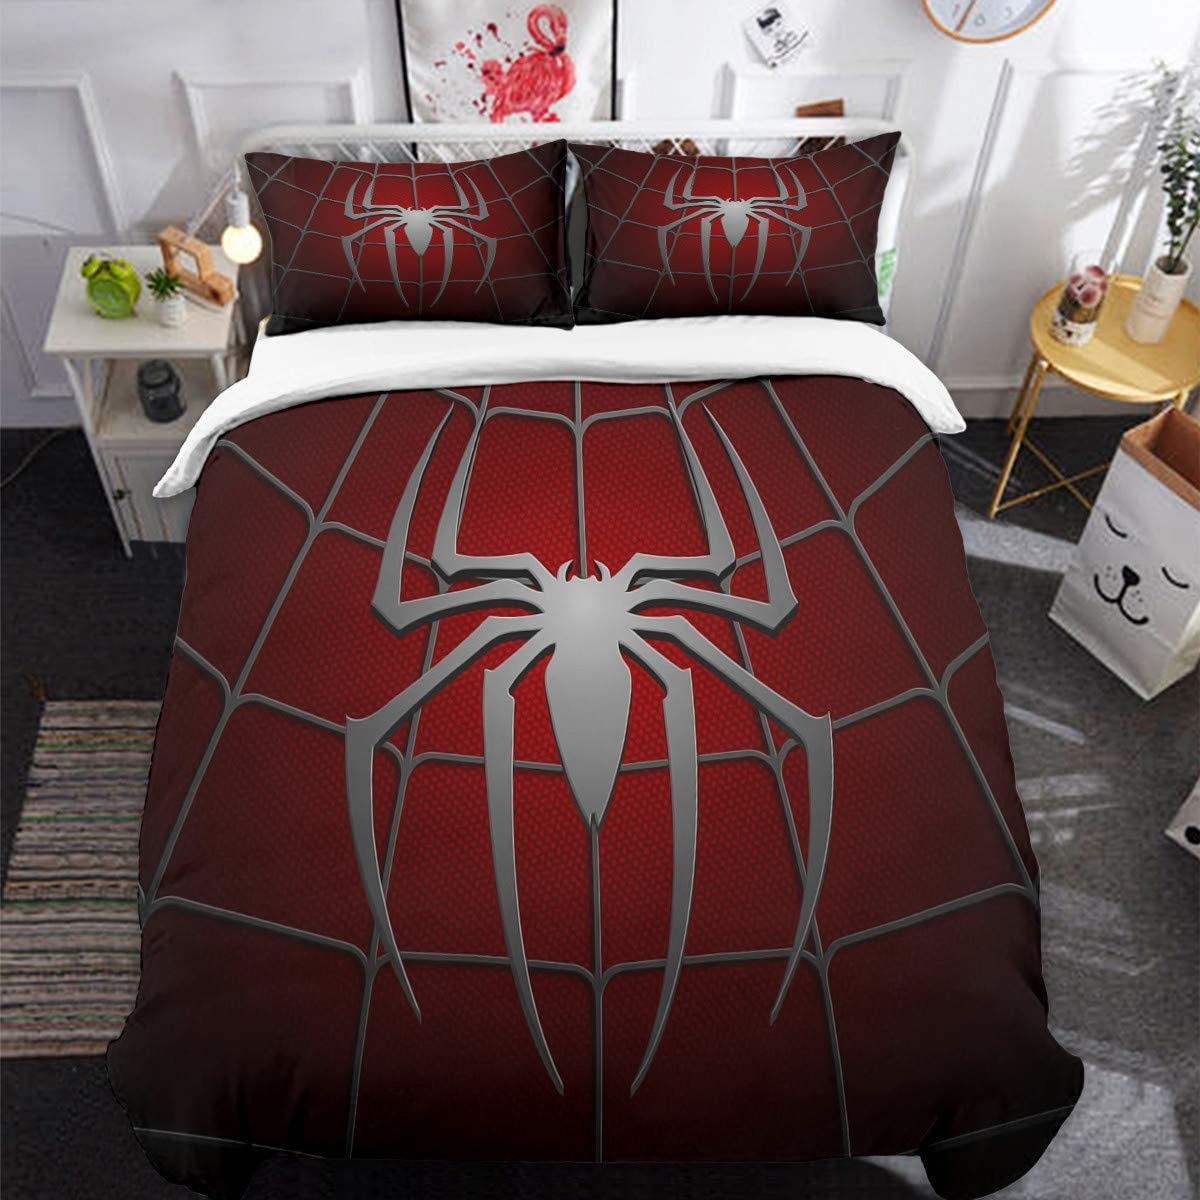 3D Printed Spider Queen Bedding Set for Children Teens, Spider Web Pattern Duvet Cover Set with 2 Pillowcases, Dark Red Comforter Cover with Zipper Closure 90